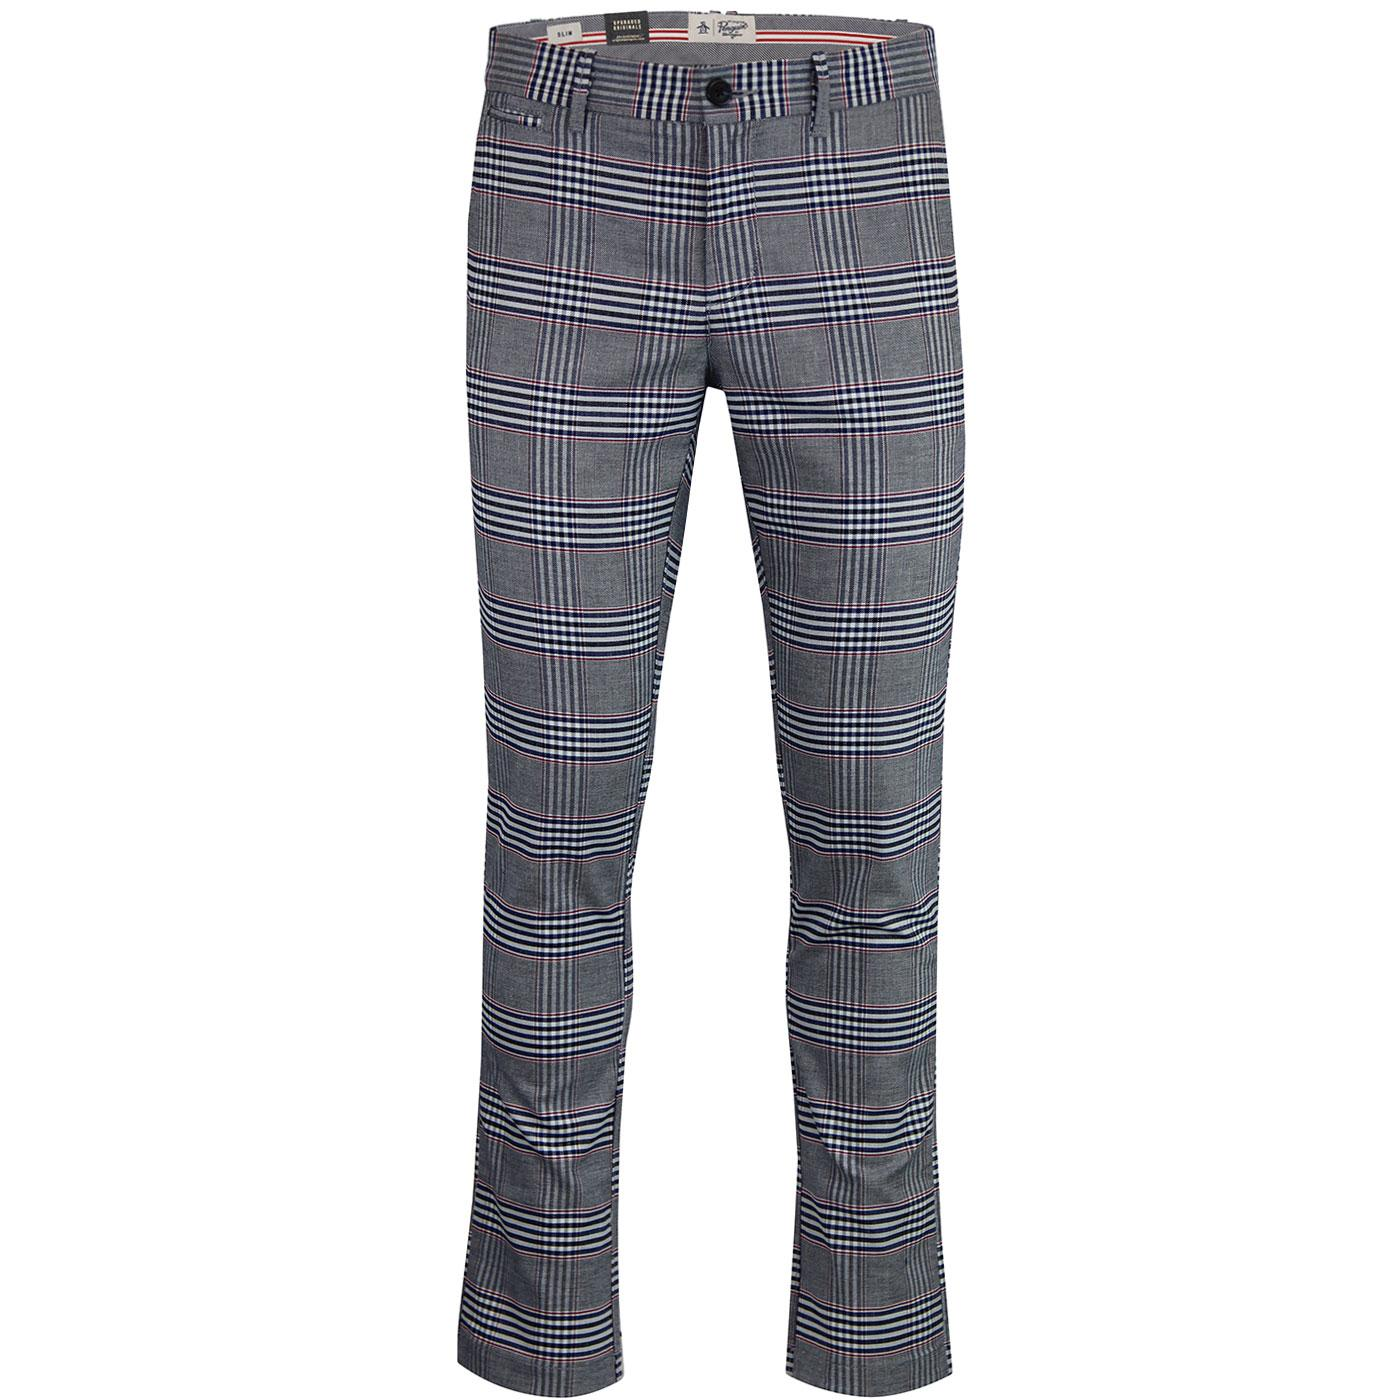 ORIGINAL PENGUIN Retro P55 Stretch Check Chinos